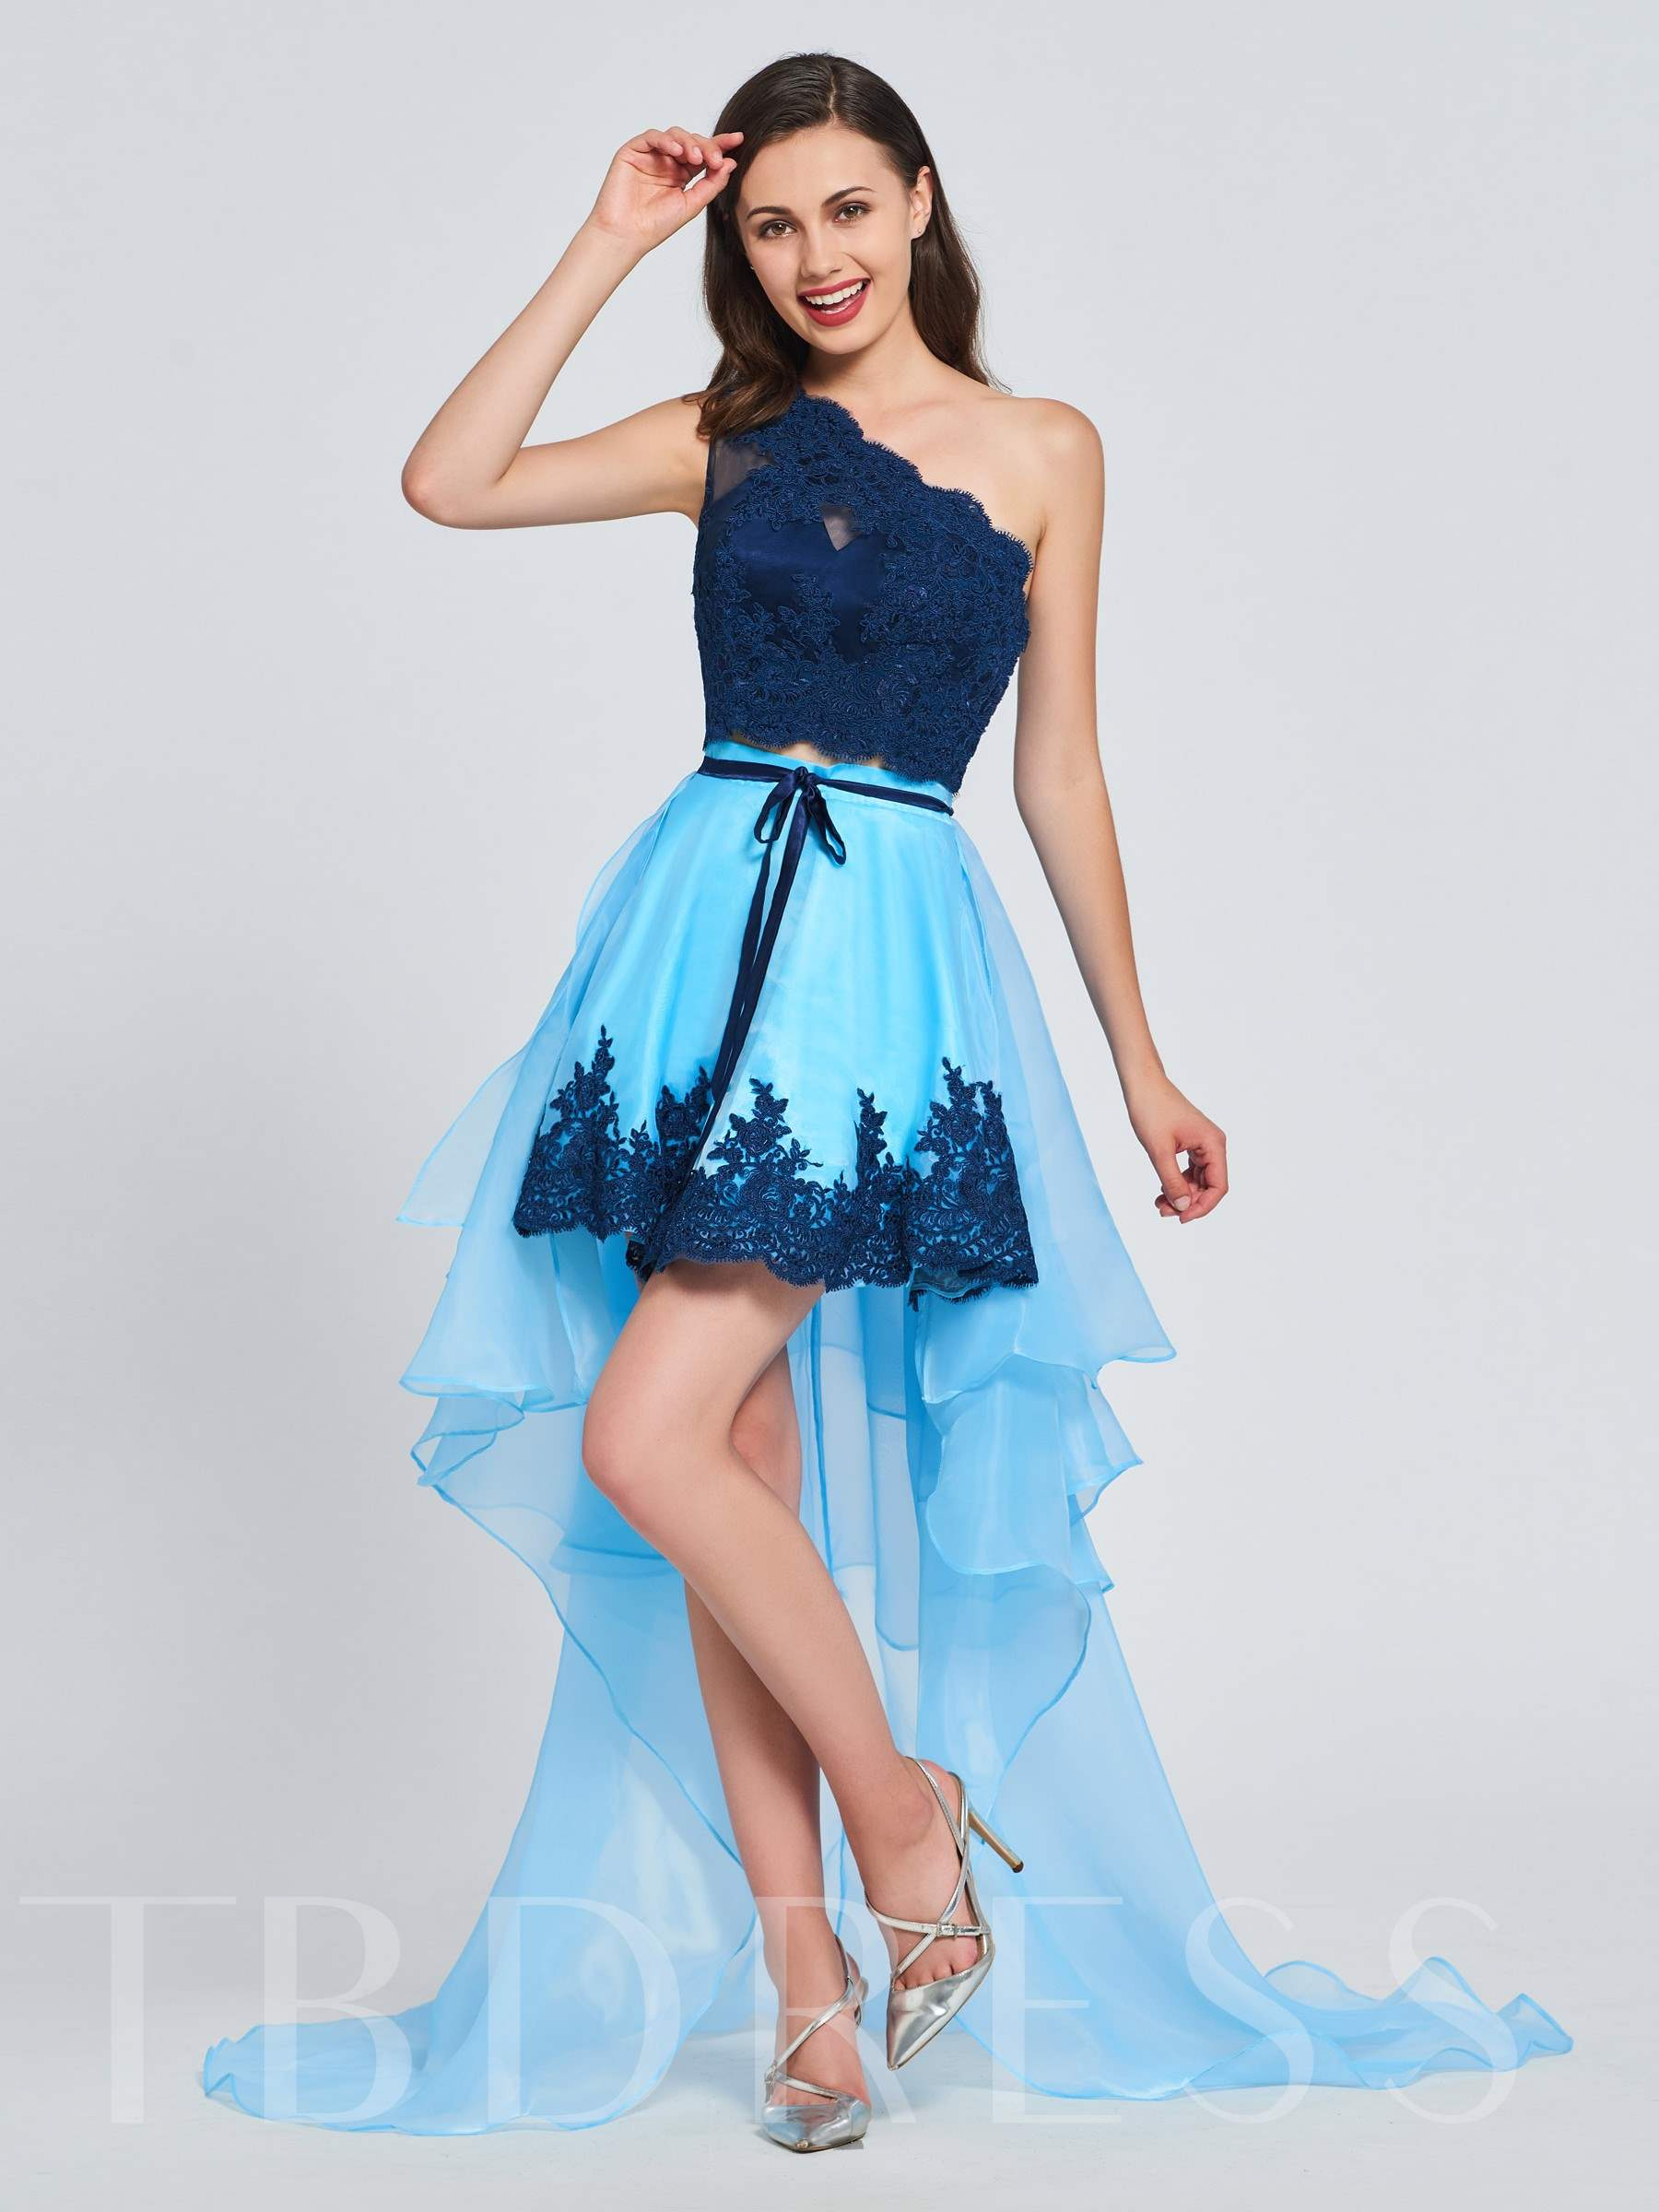 Buy A-Line One-Shoulder Beading Lace Sashes Prom Dress, Spring,Summer,Fall,Winter, 13394725 for $139.99 in TBDress store